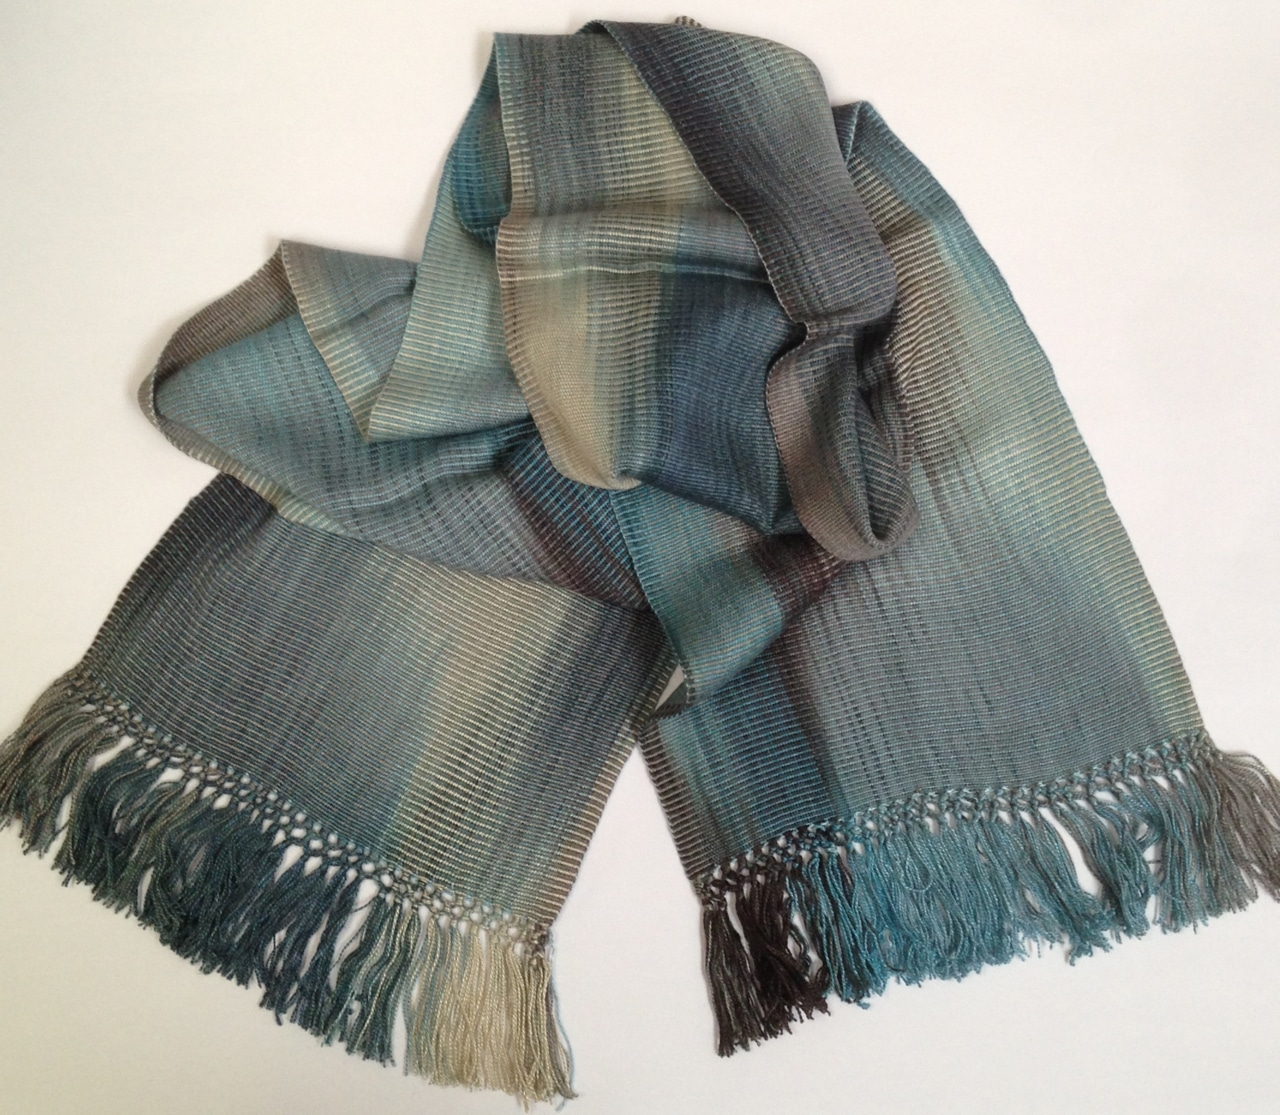 Denim (Blue, Black, Cream, Gray) - Lightweight Bamboo Handwoven Scarf 8 x 68